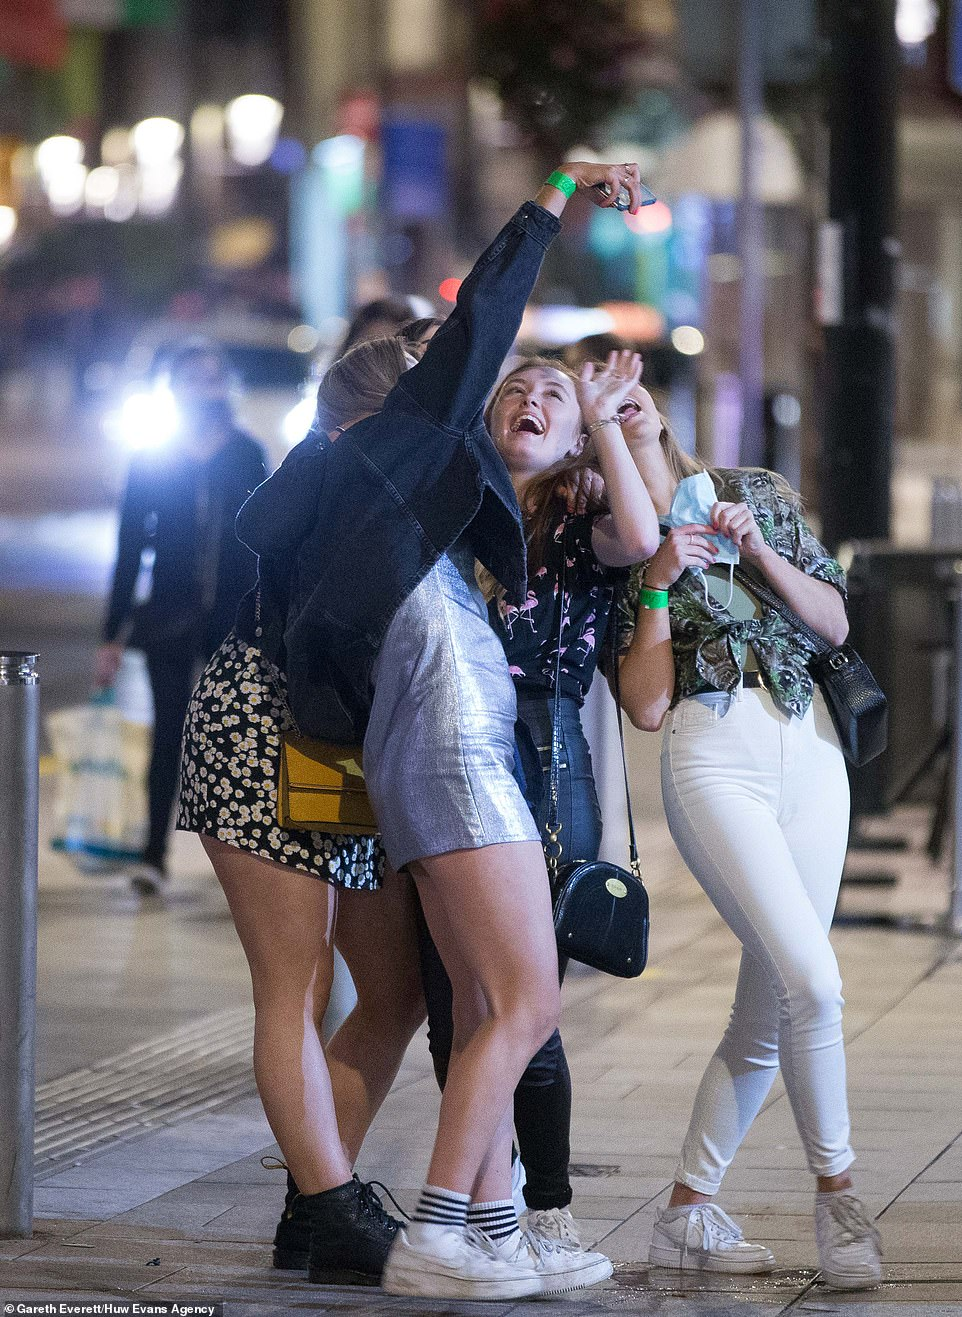 A group of girls pose for a selfie on a night out in Cardiff before Wales goes into a 17-day lockdown from 6pm on Friday